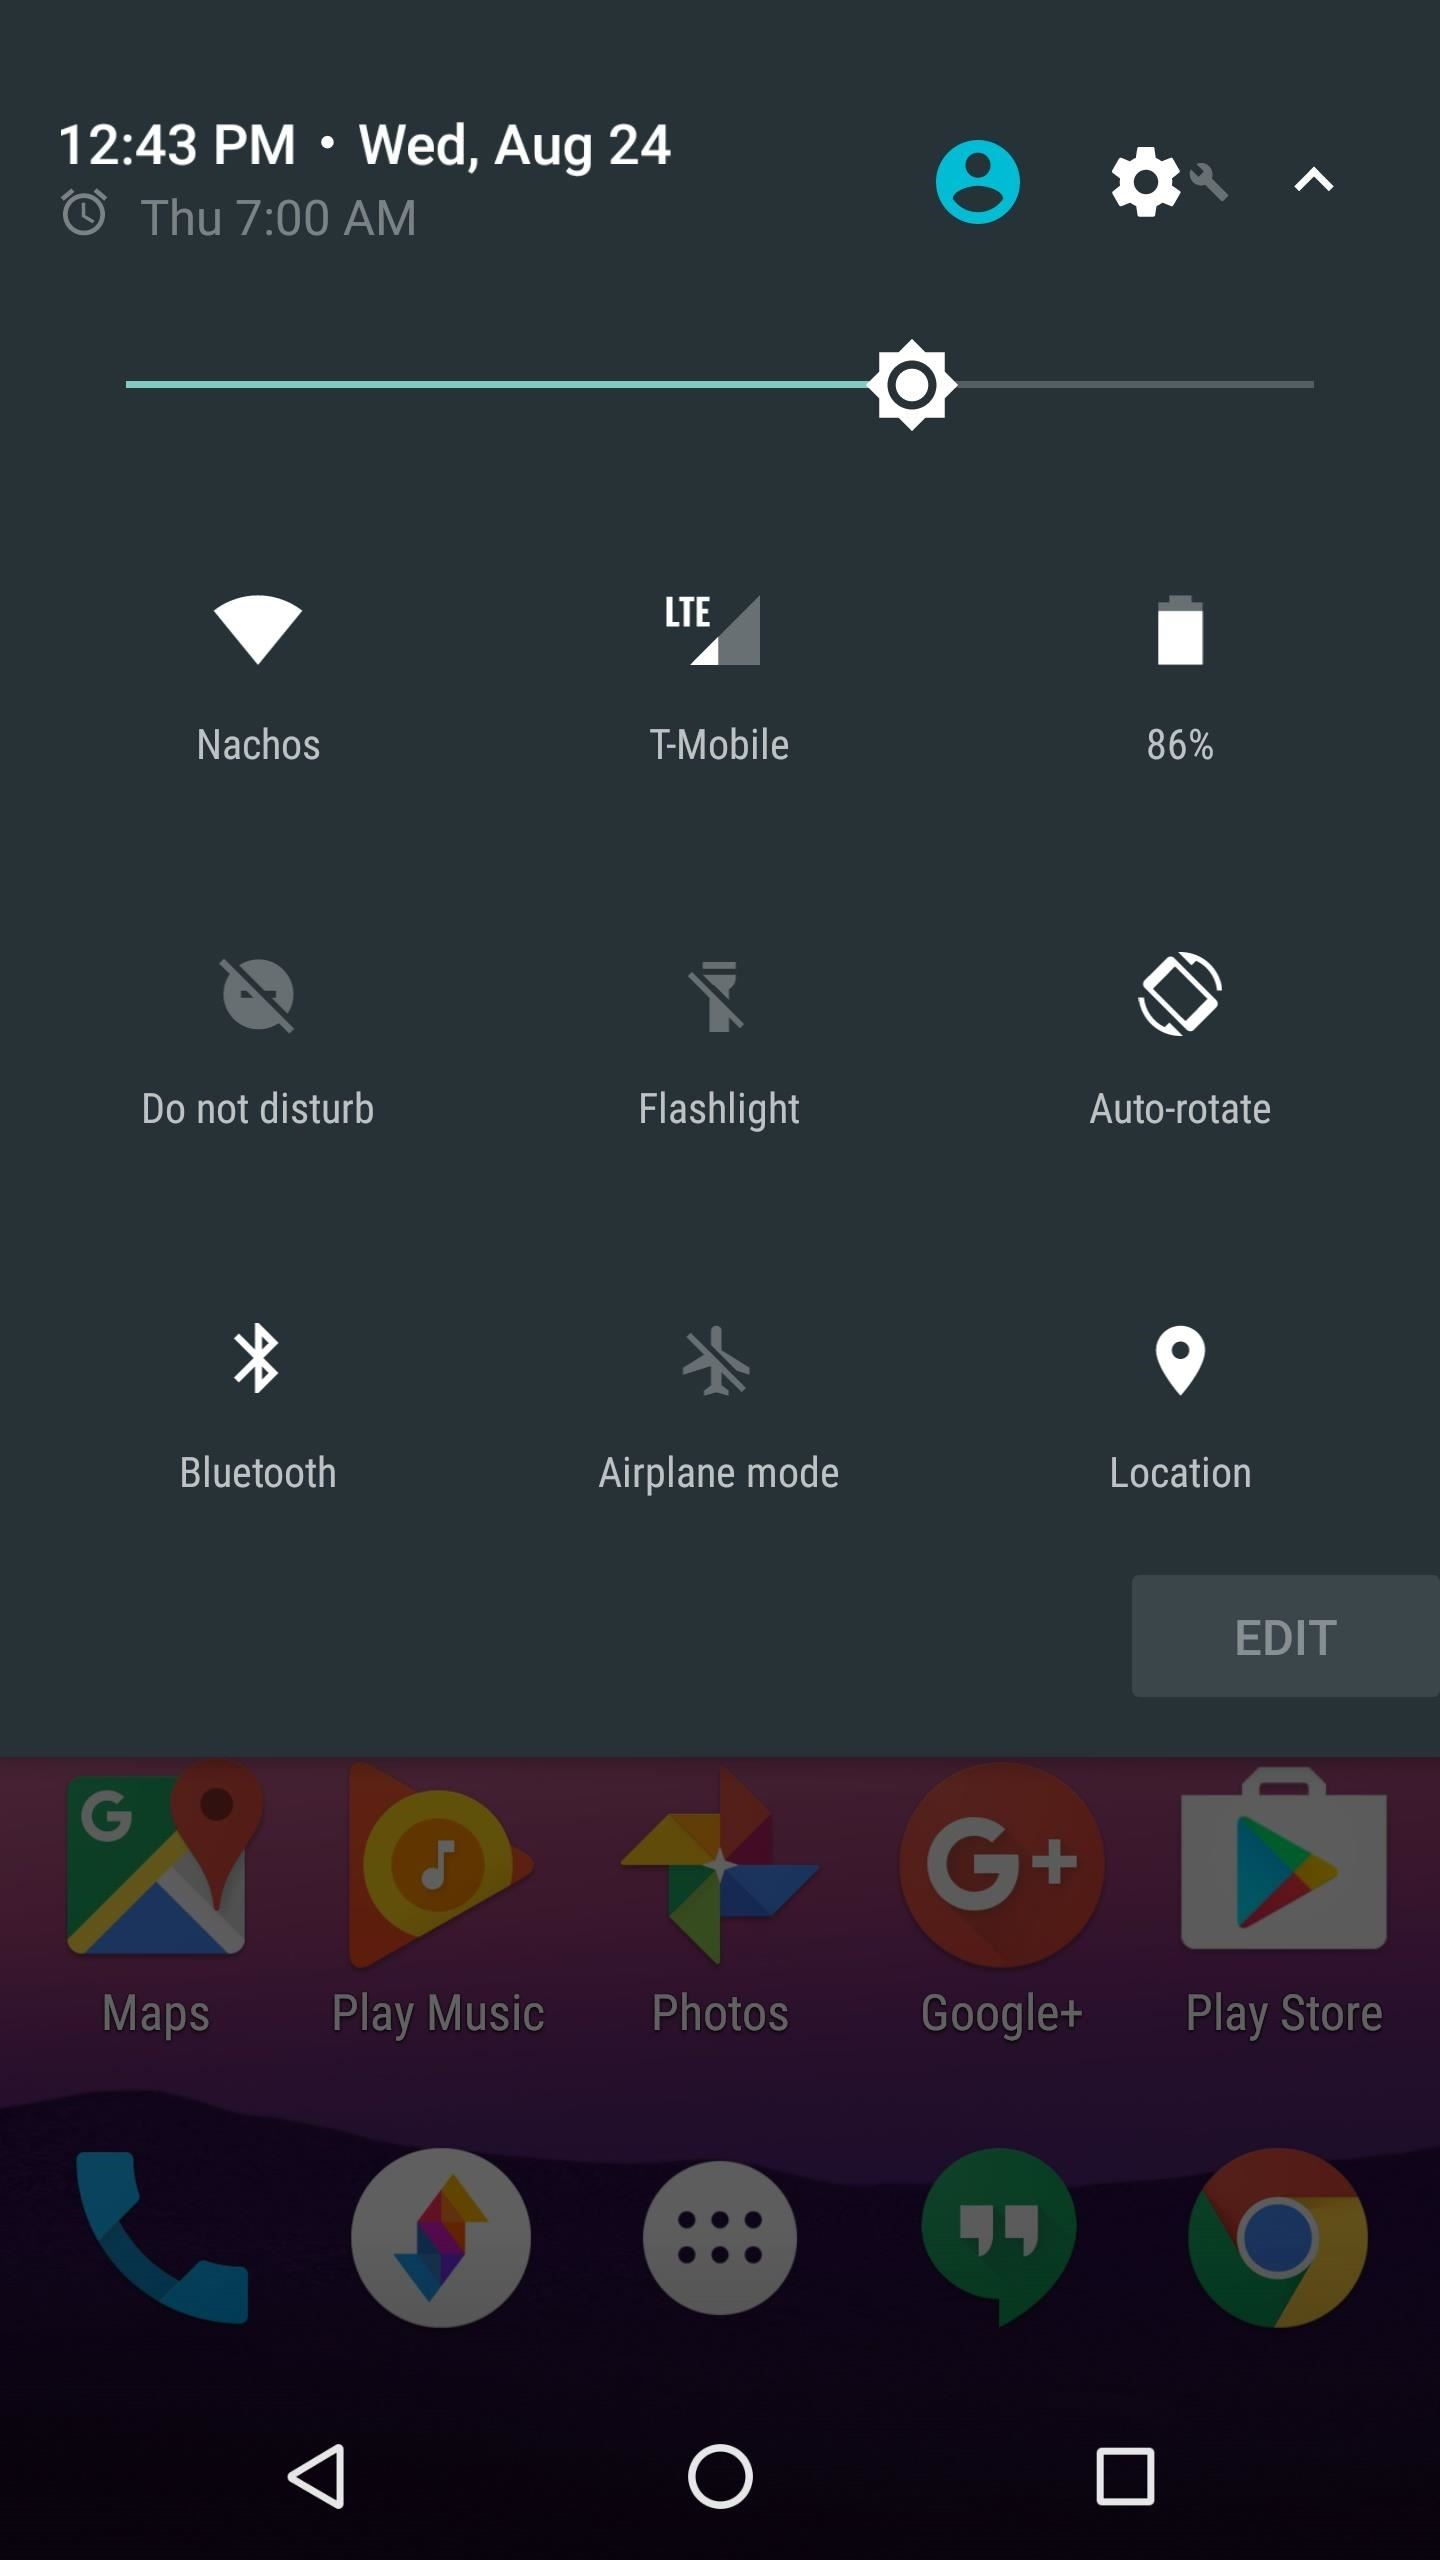 How to Enable the Hidden 'Night Mode' Setting on Android 7.0 Nougat